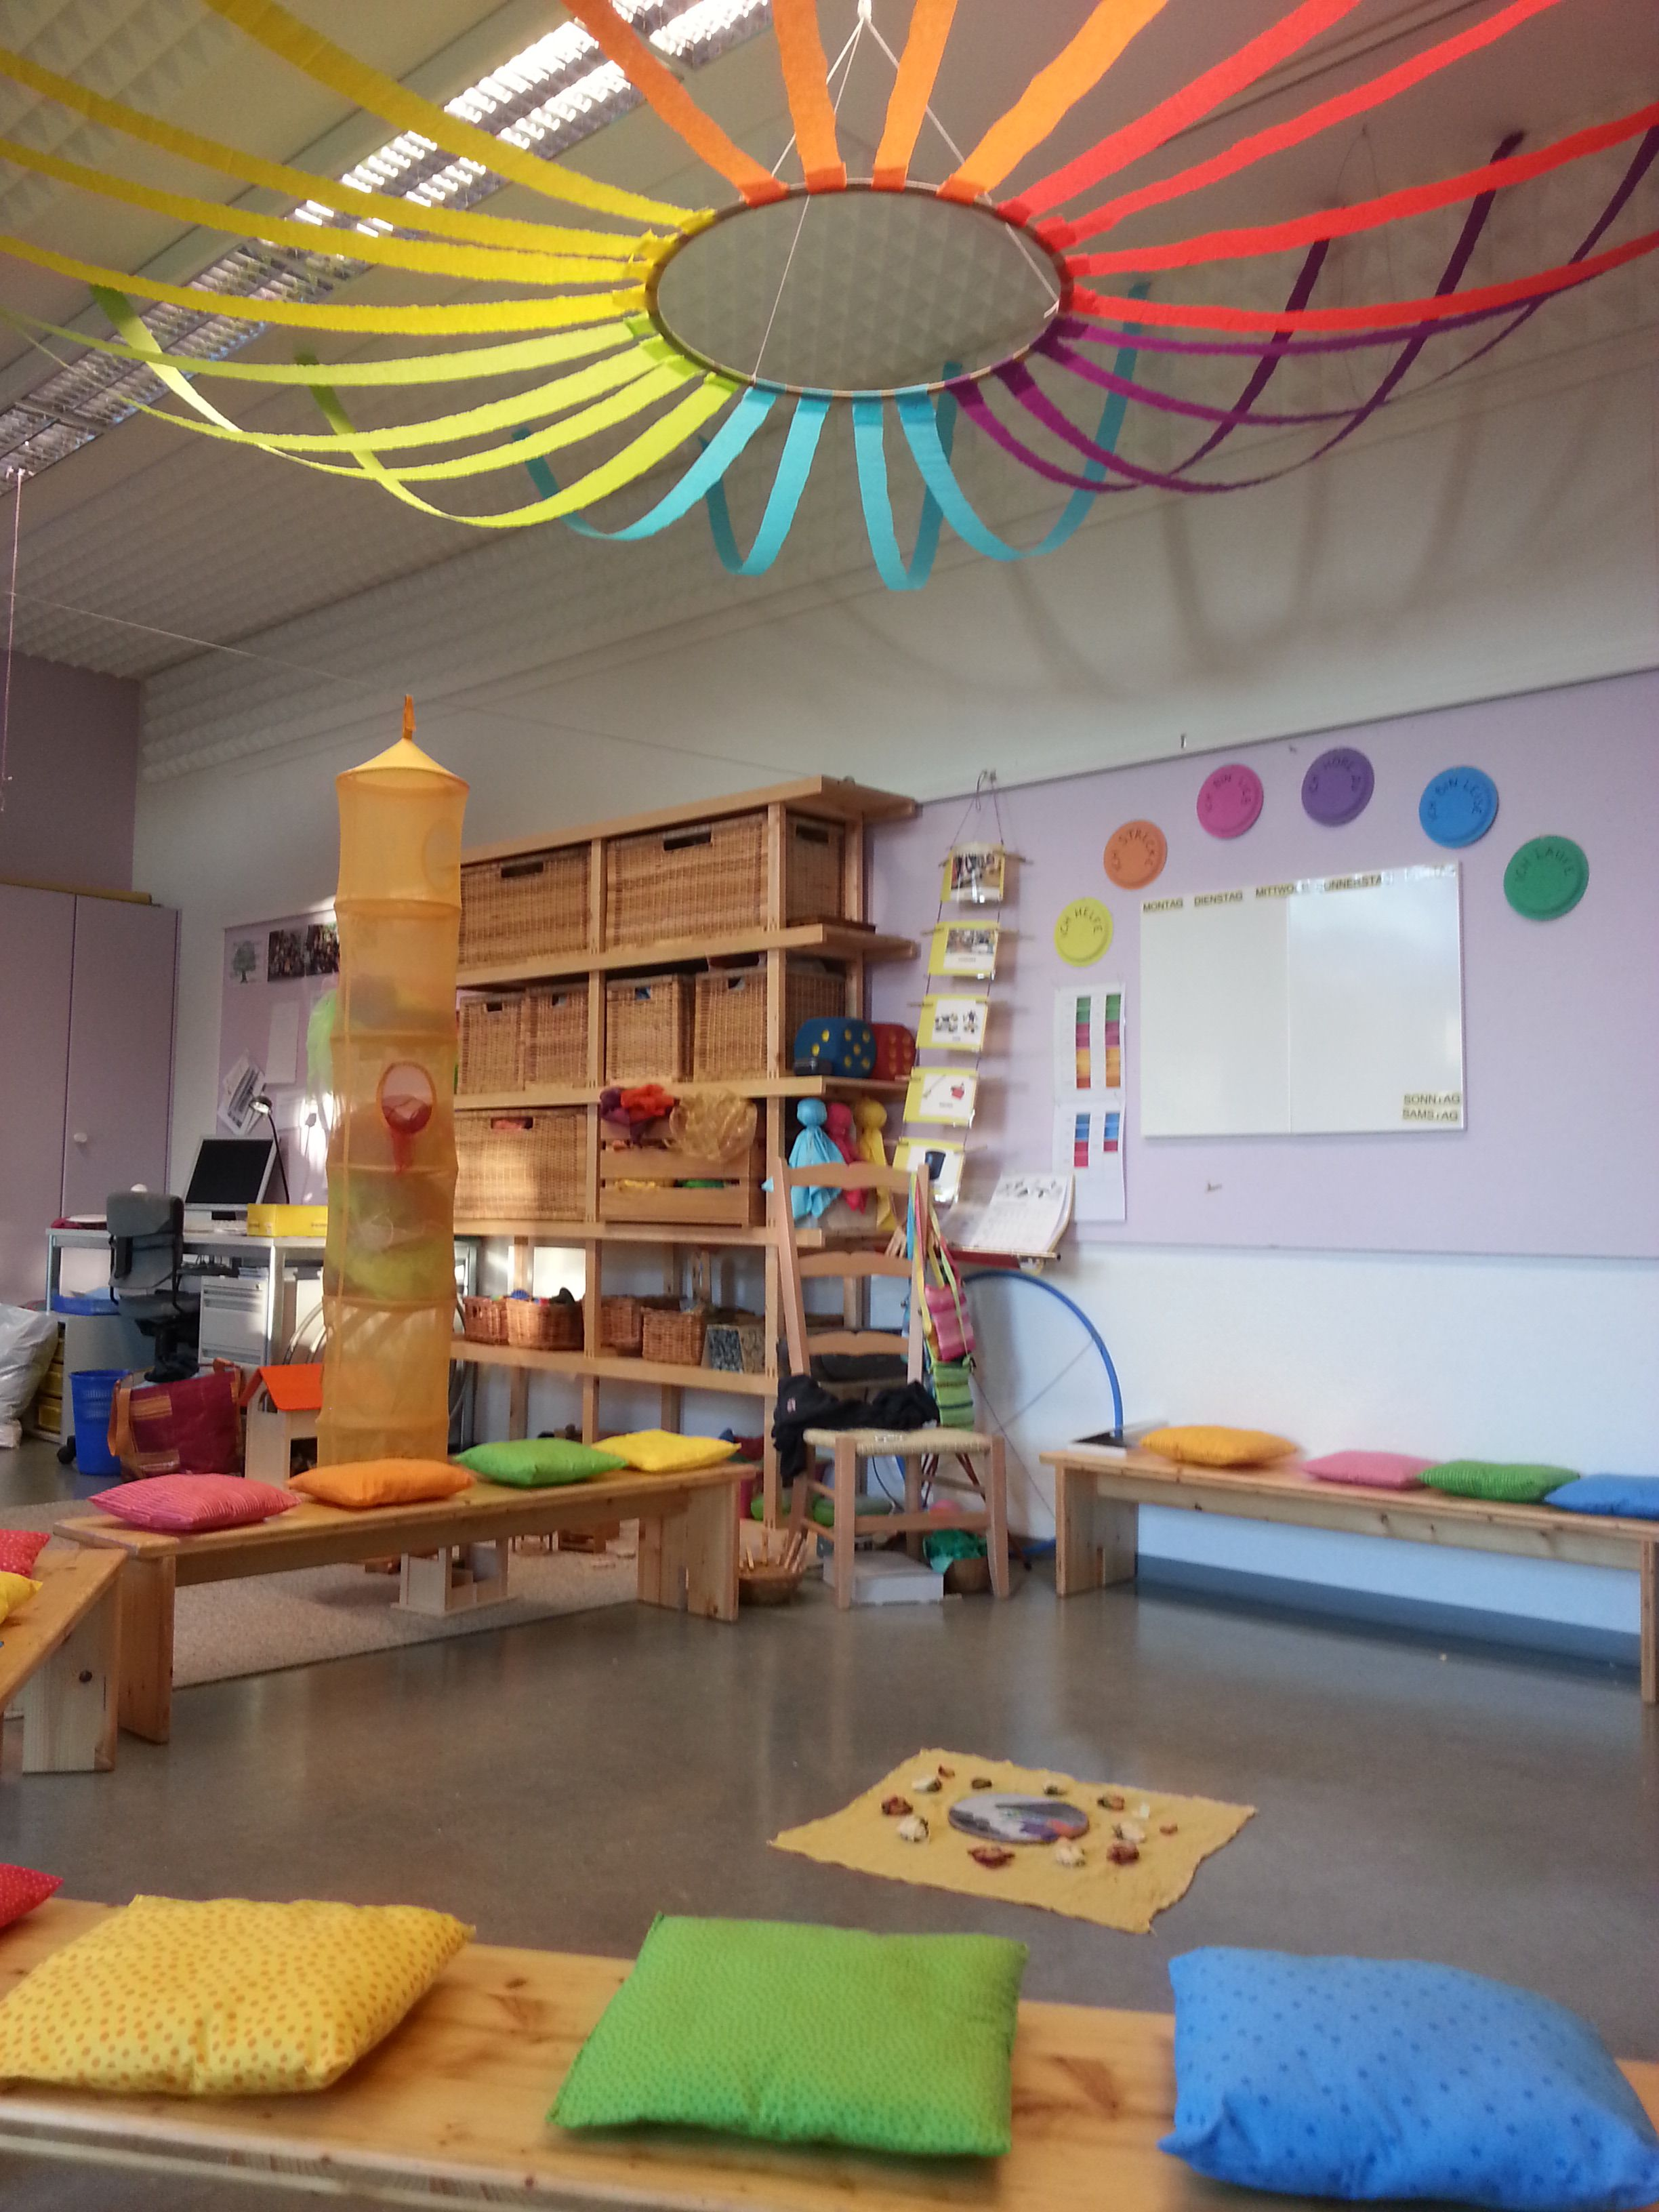 Great Ideas For School: Color Theme Kindergarten Love The Hoop And